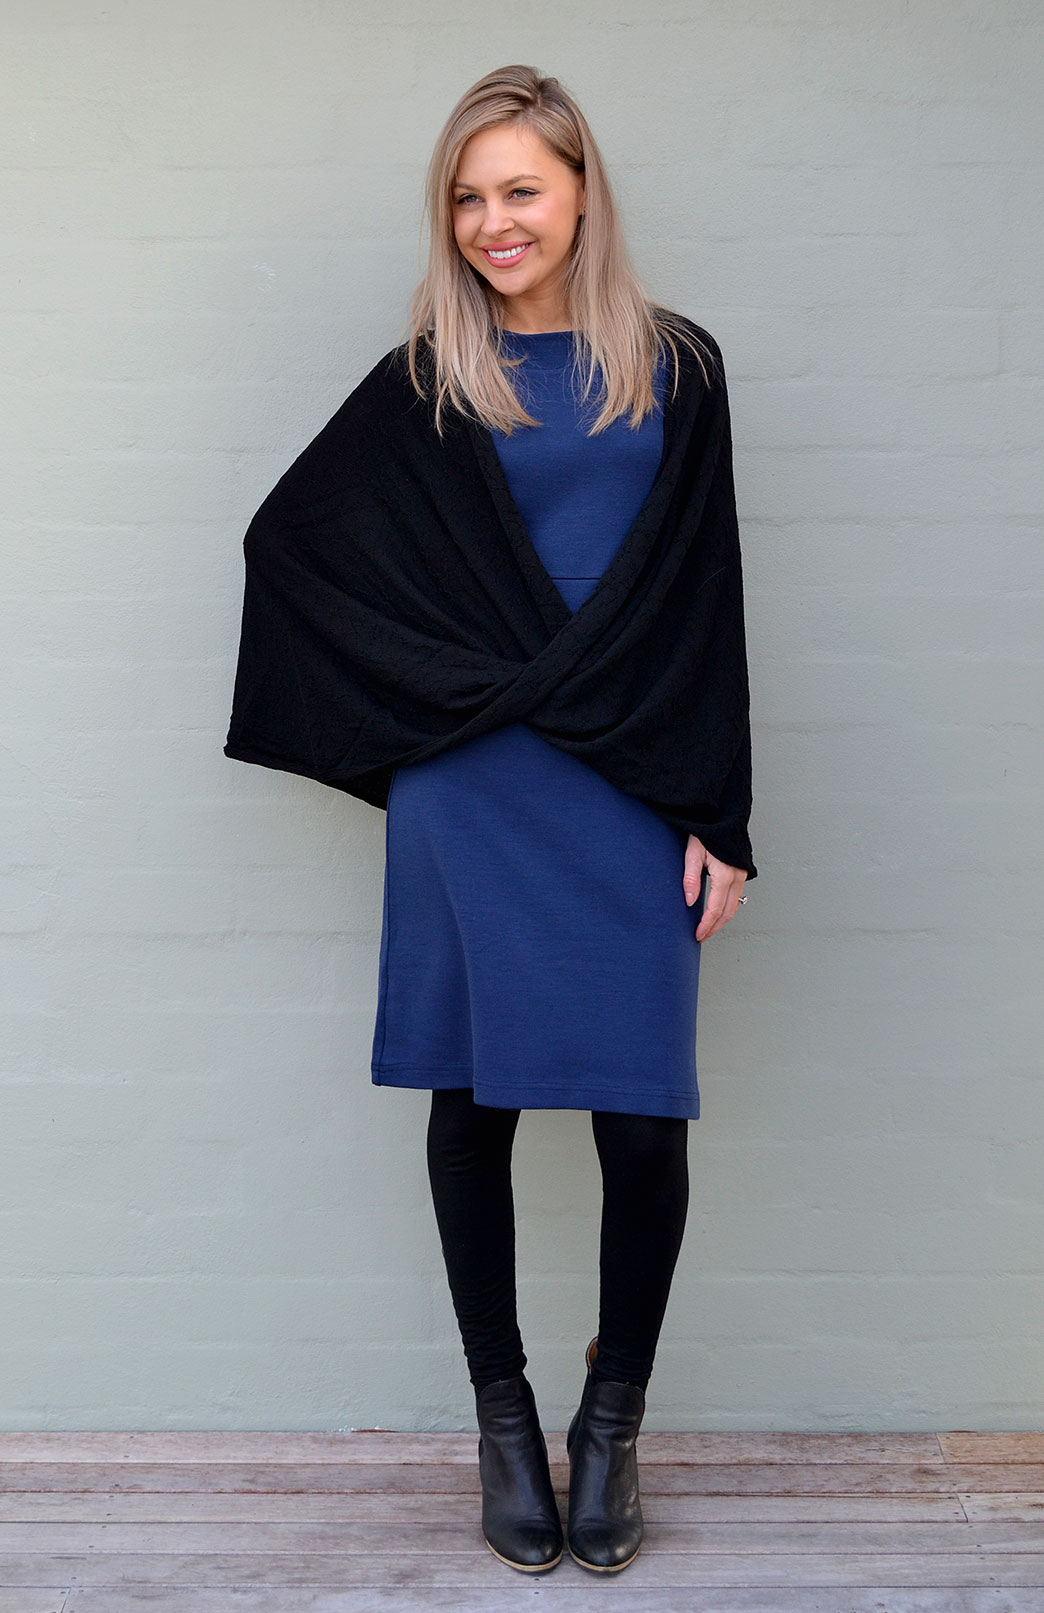 Merino Twisted Wrap - Women's Merino Wool Black Twisted Wrap and Classic Shrug - Smitten Merino Tasmania Australia